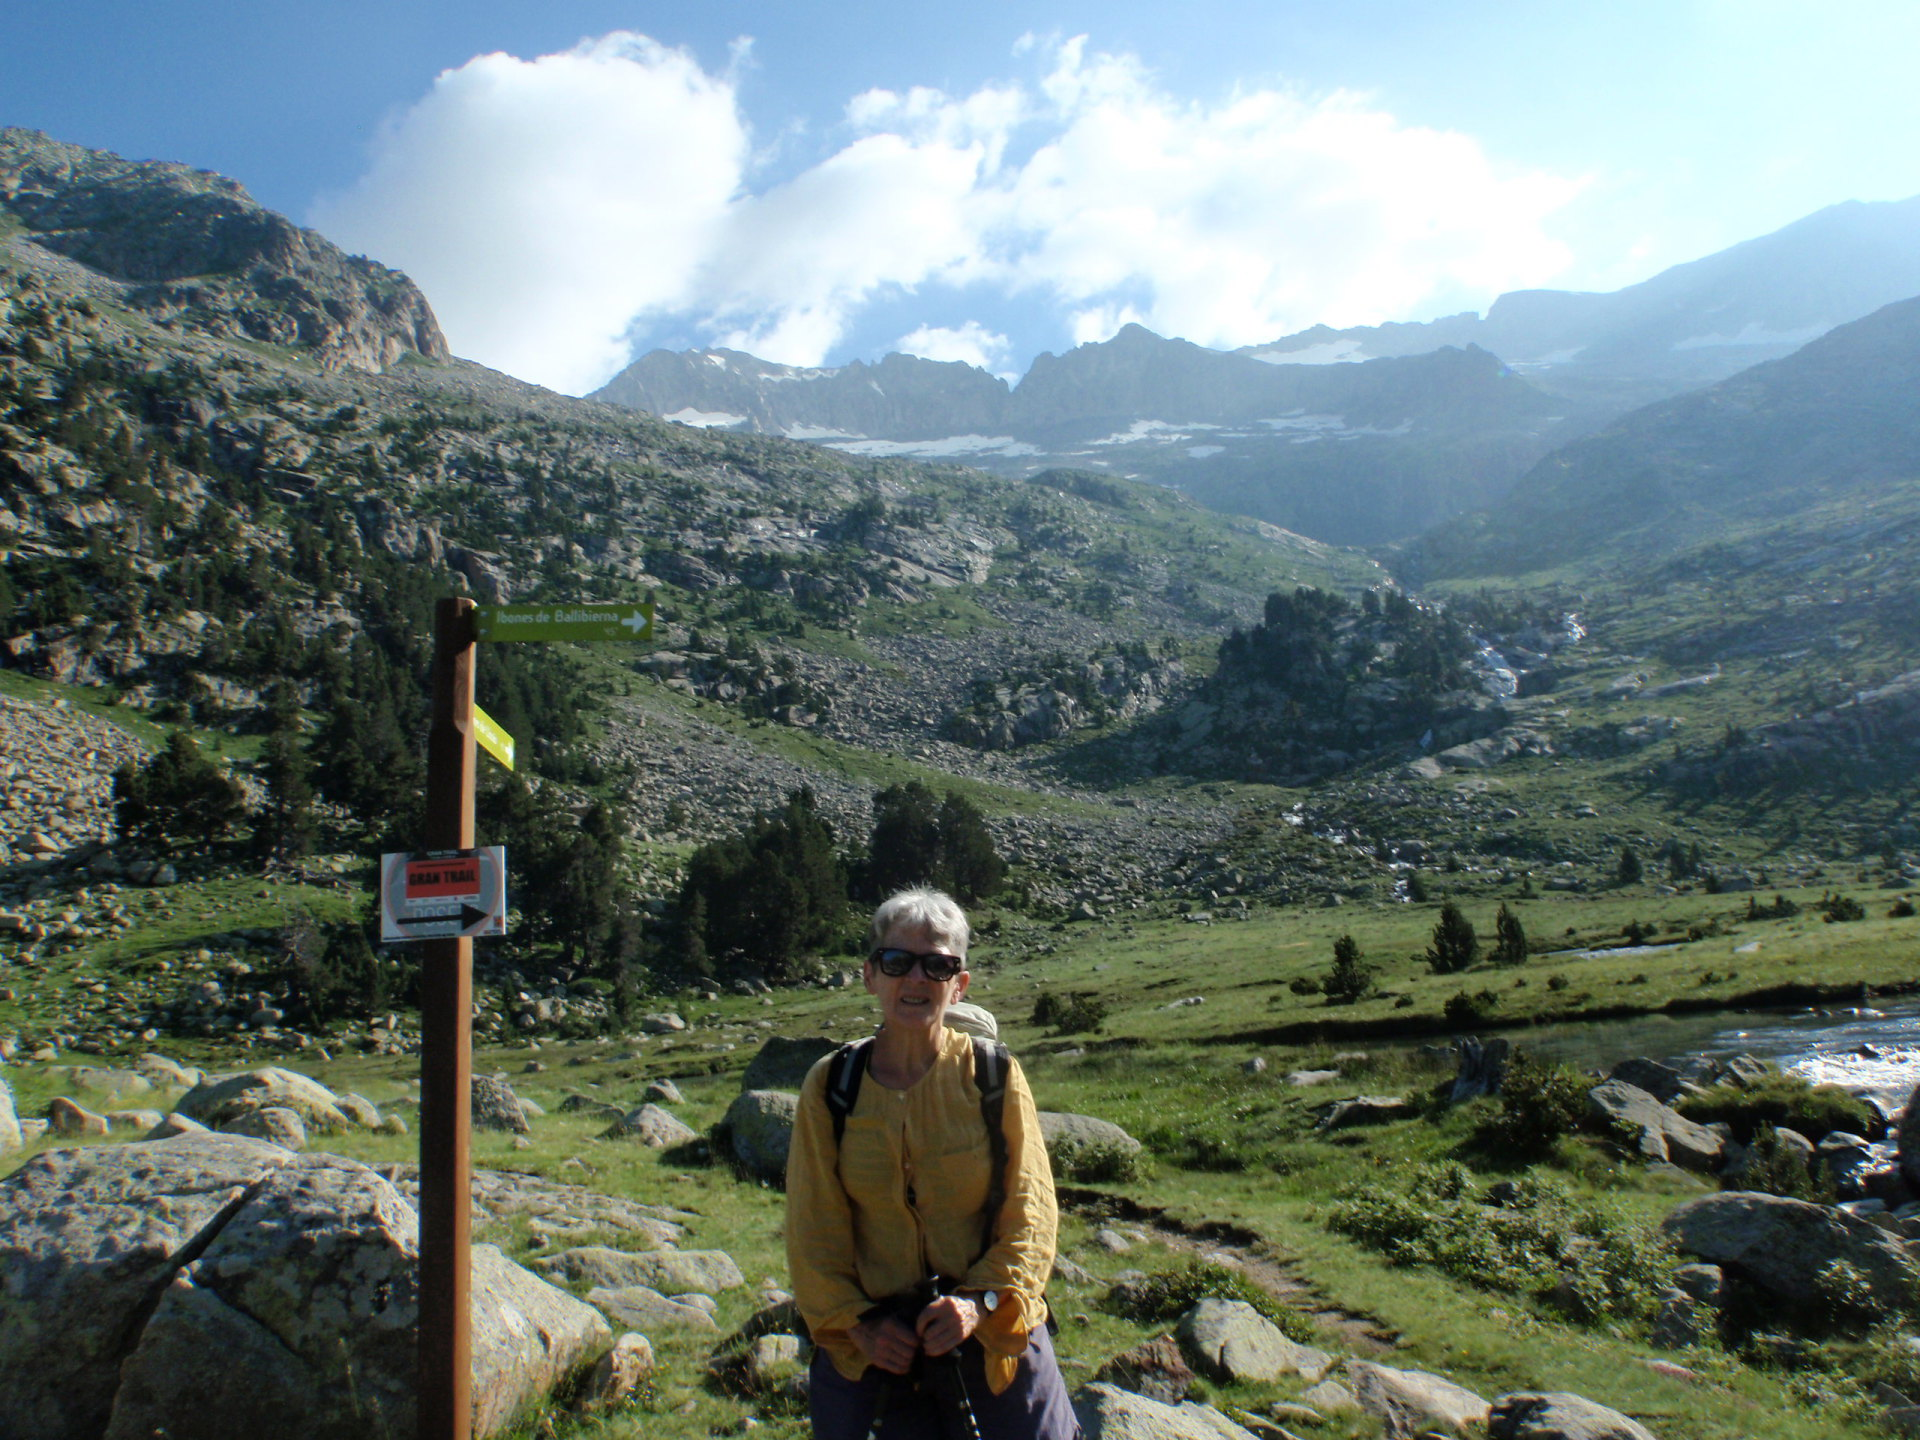 Starting your Pyrenees trek in the next month or so?